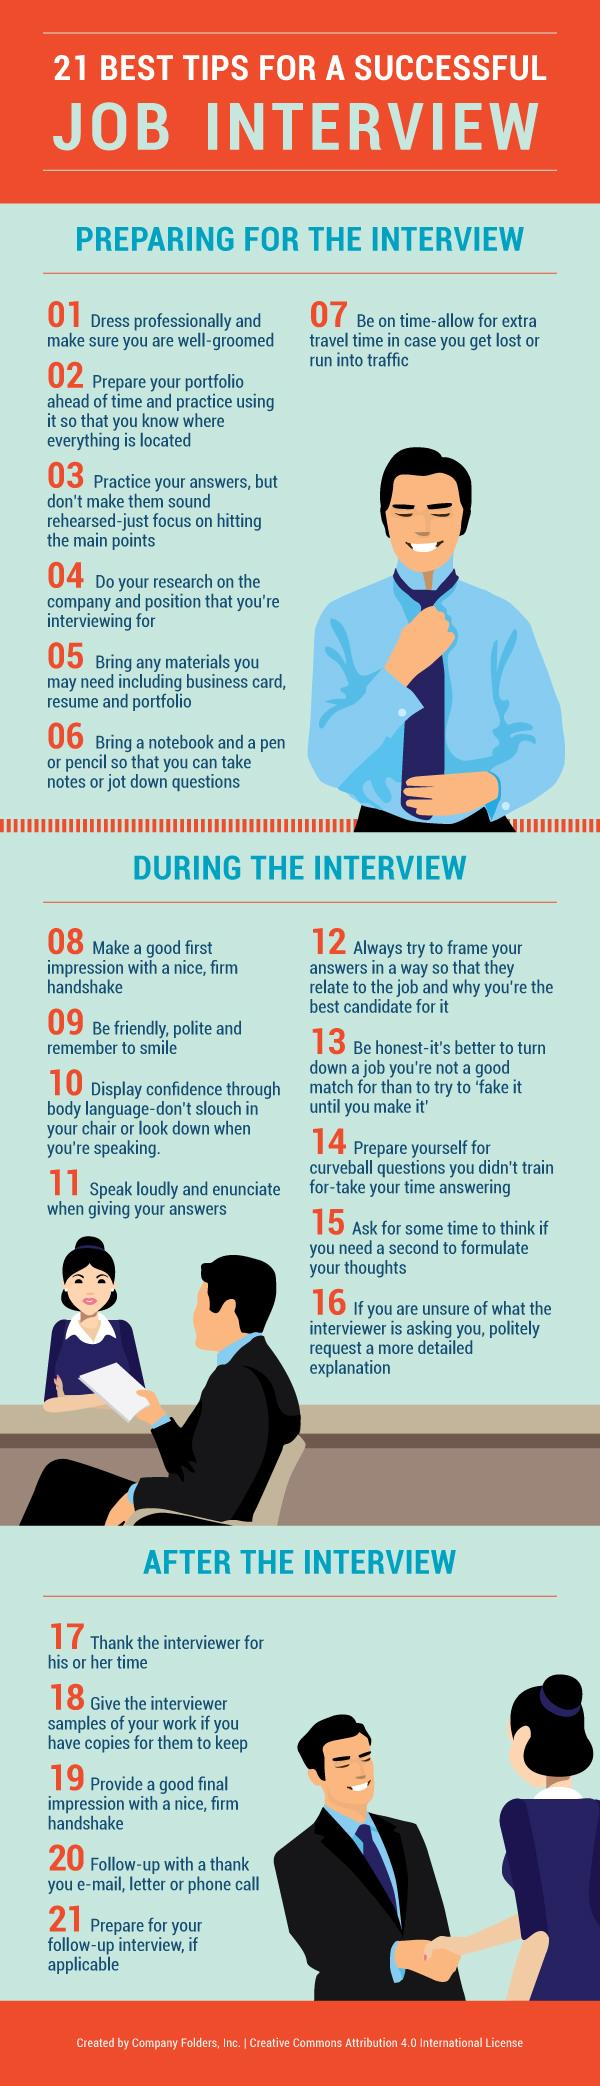 21 Tips Successful Job Interview Infographic